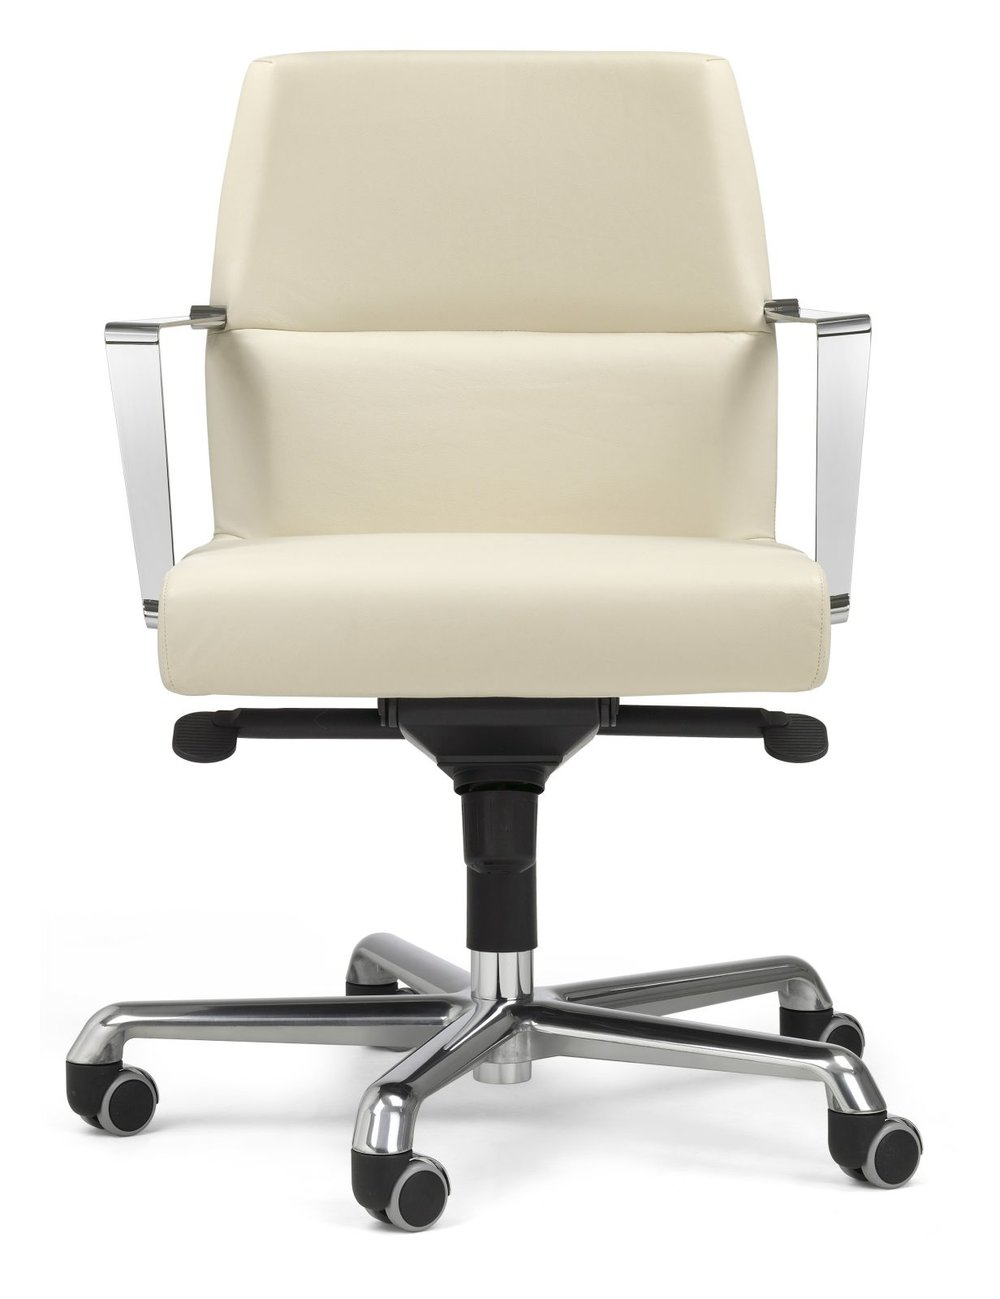 modern-office-chairs-Italian-furniture-designer-chairs (23).jpg